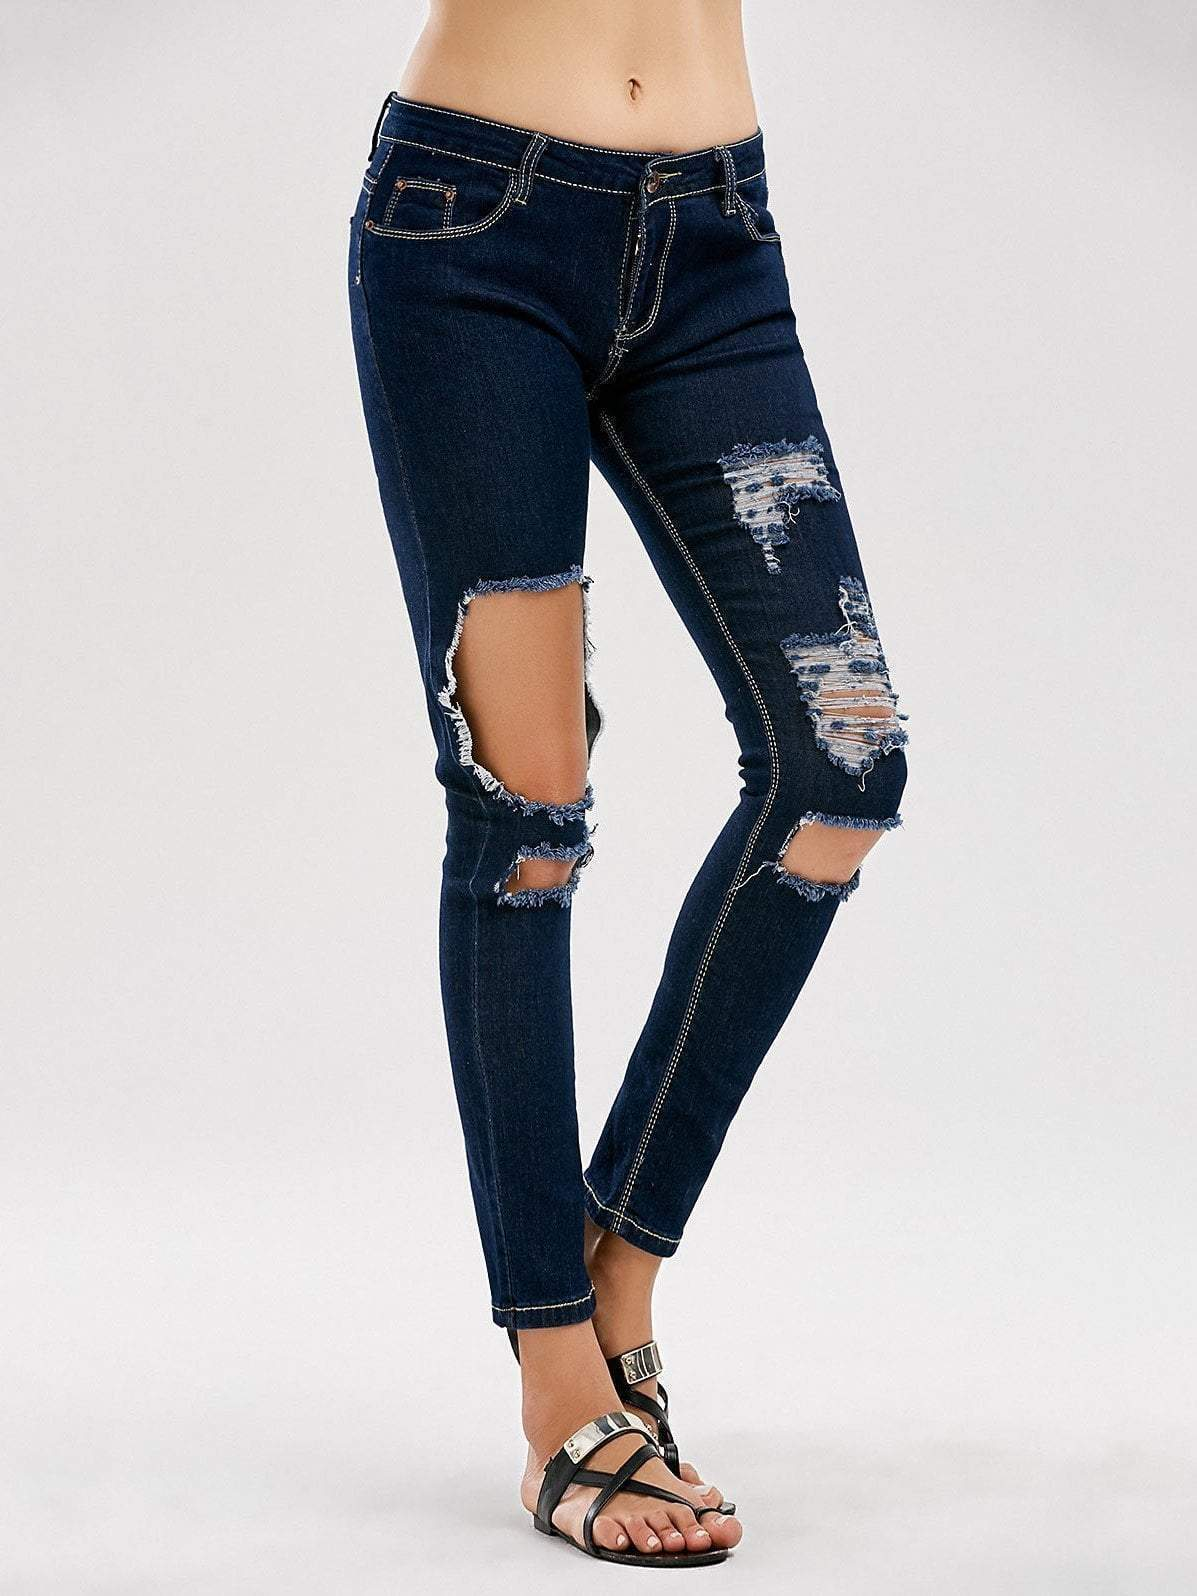 Lace Up Hole Scratch Jeans